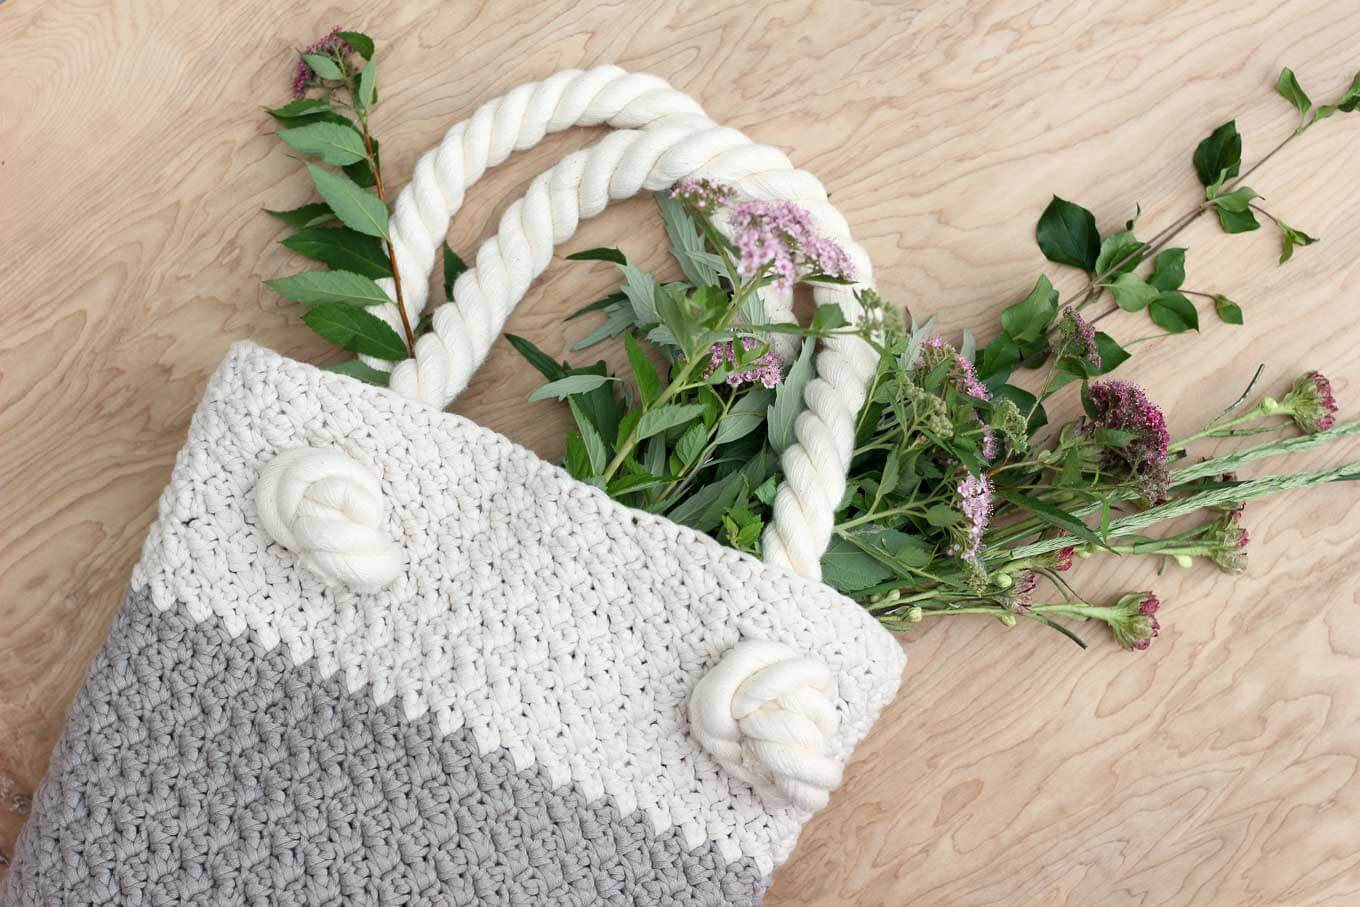 Free crochet bag pattern beginners 22 make do crew this free crochet bag pattern for beginners is deceptively simple neutral colors and a beautiful bankloansurffo Gallery